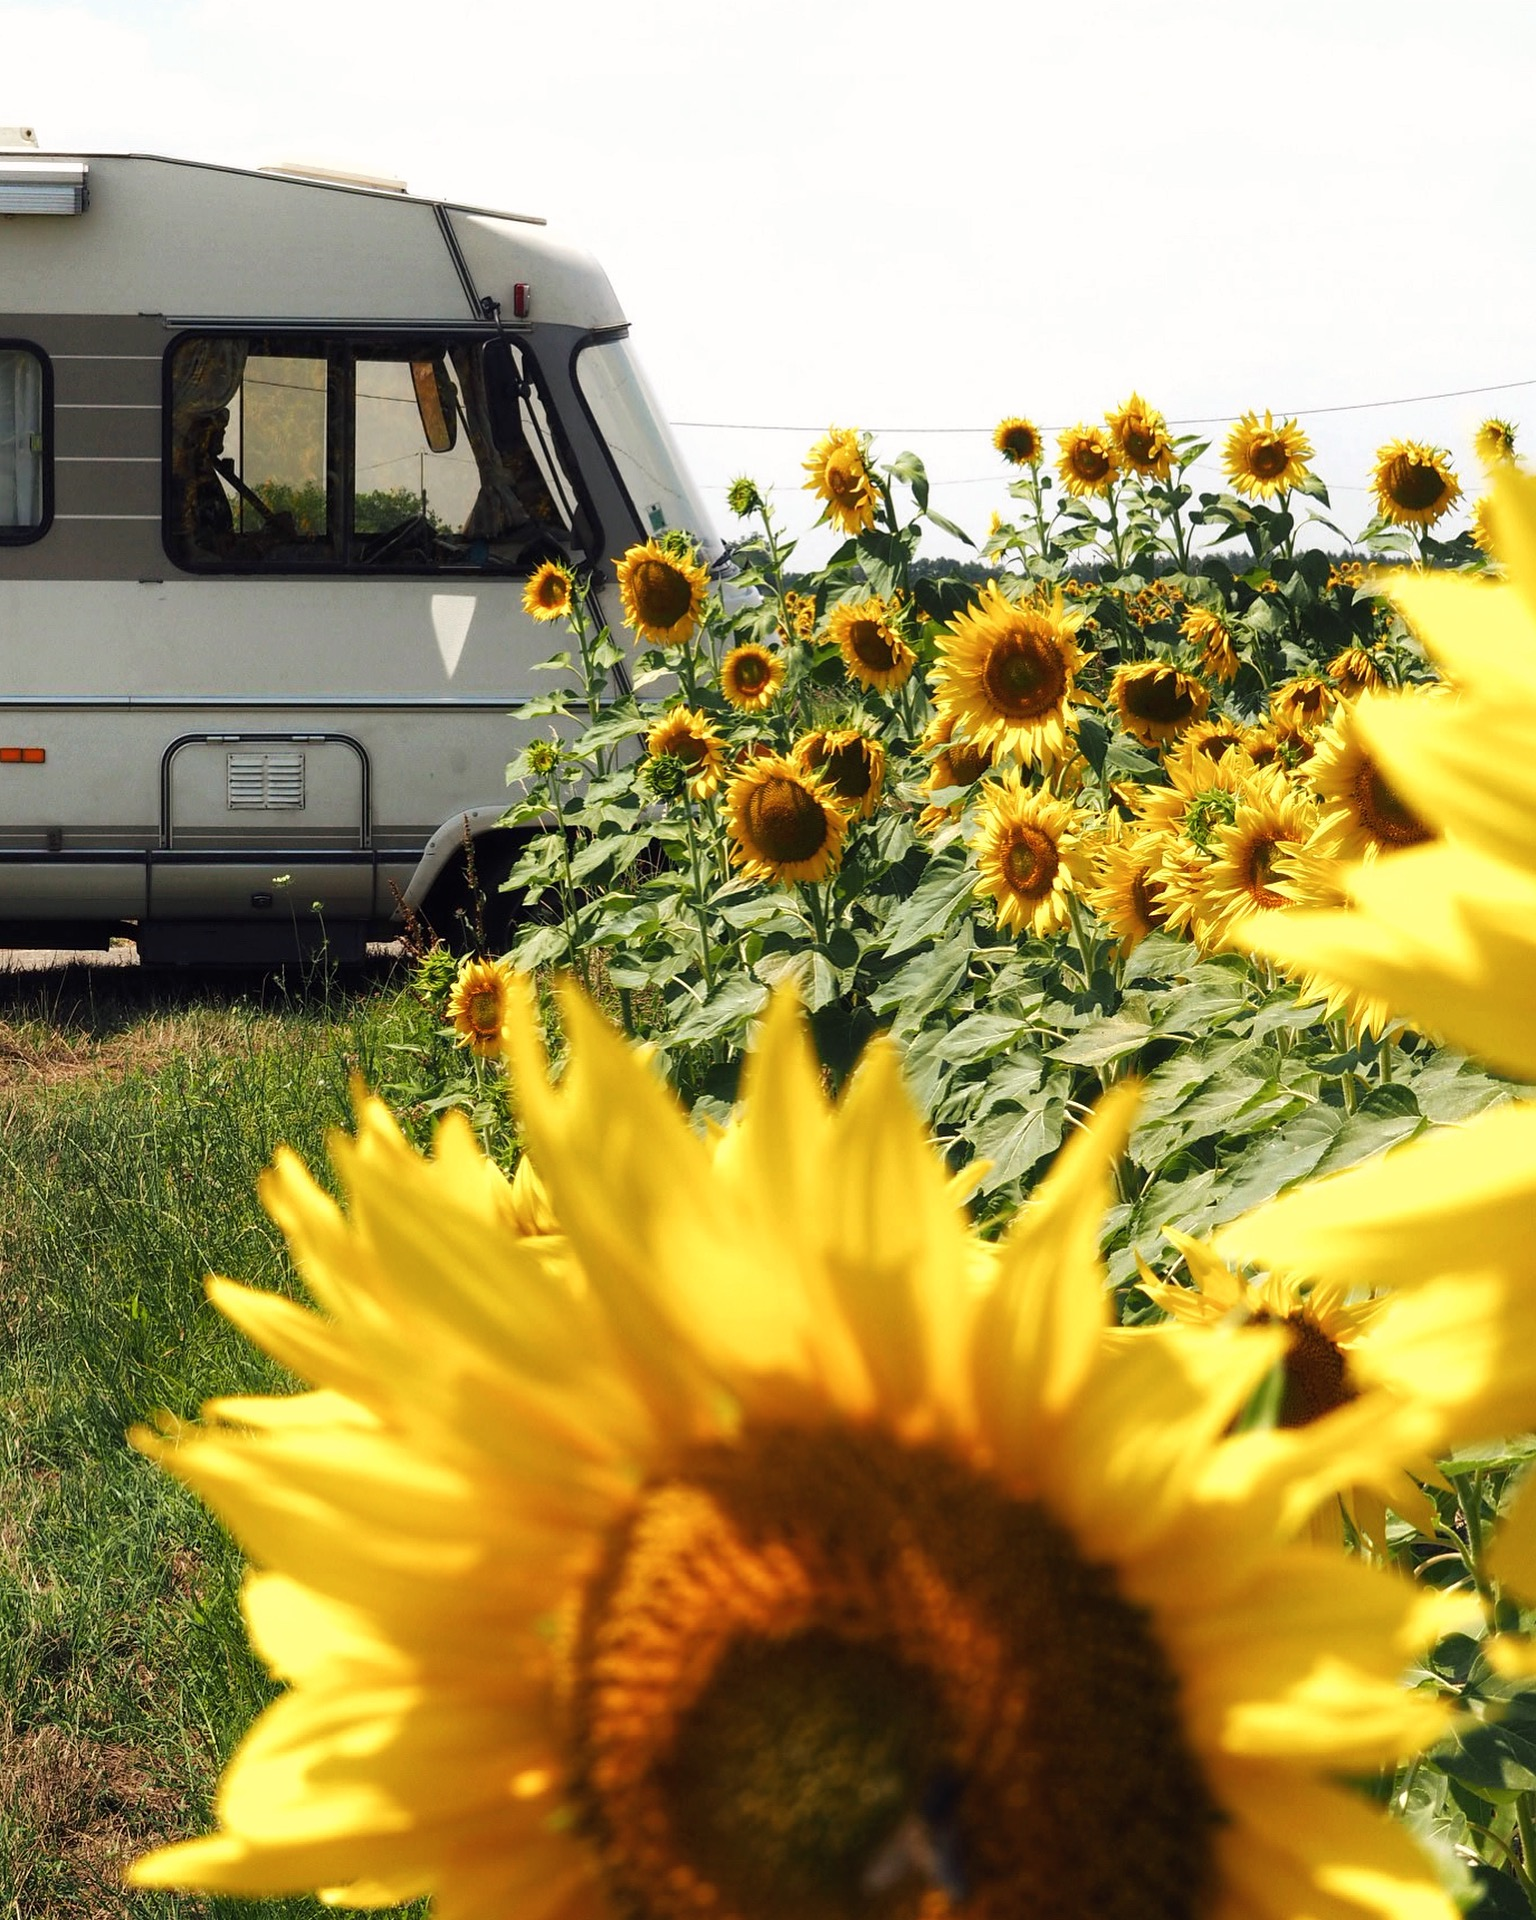 Auvergne flowers and RV